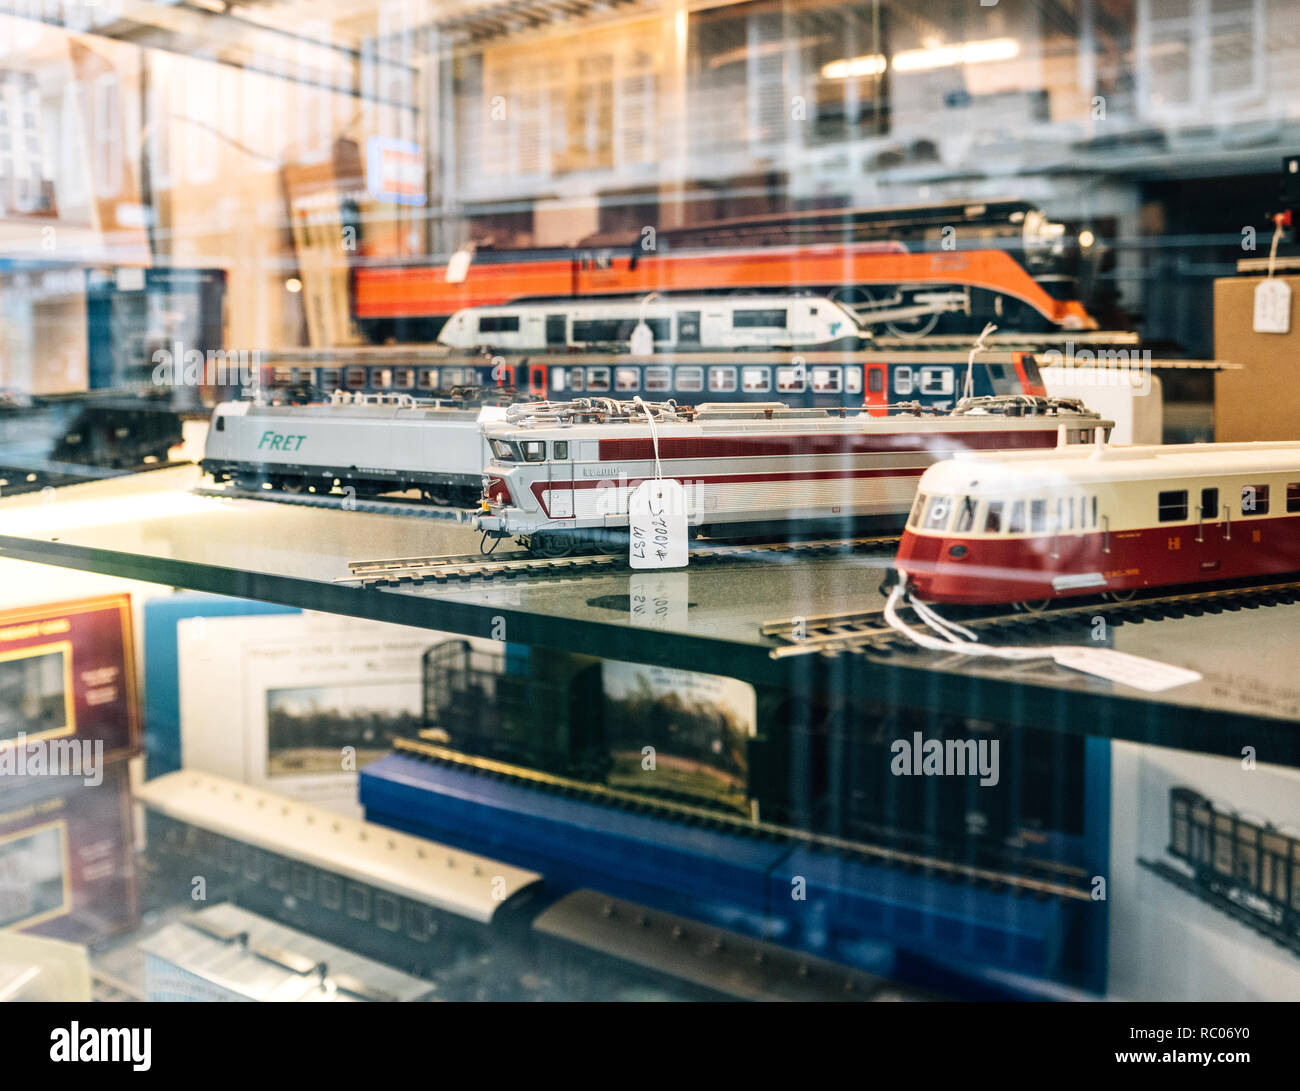 PARIS, FRANCE - JAN 30, 2018: Store window facade selling multiple toy collectible model trains featuring all railways in the world in central Paris, France - Stock Image